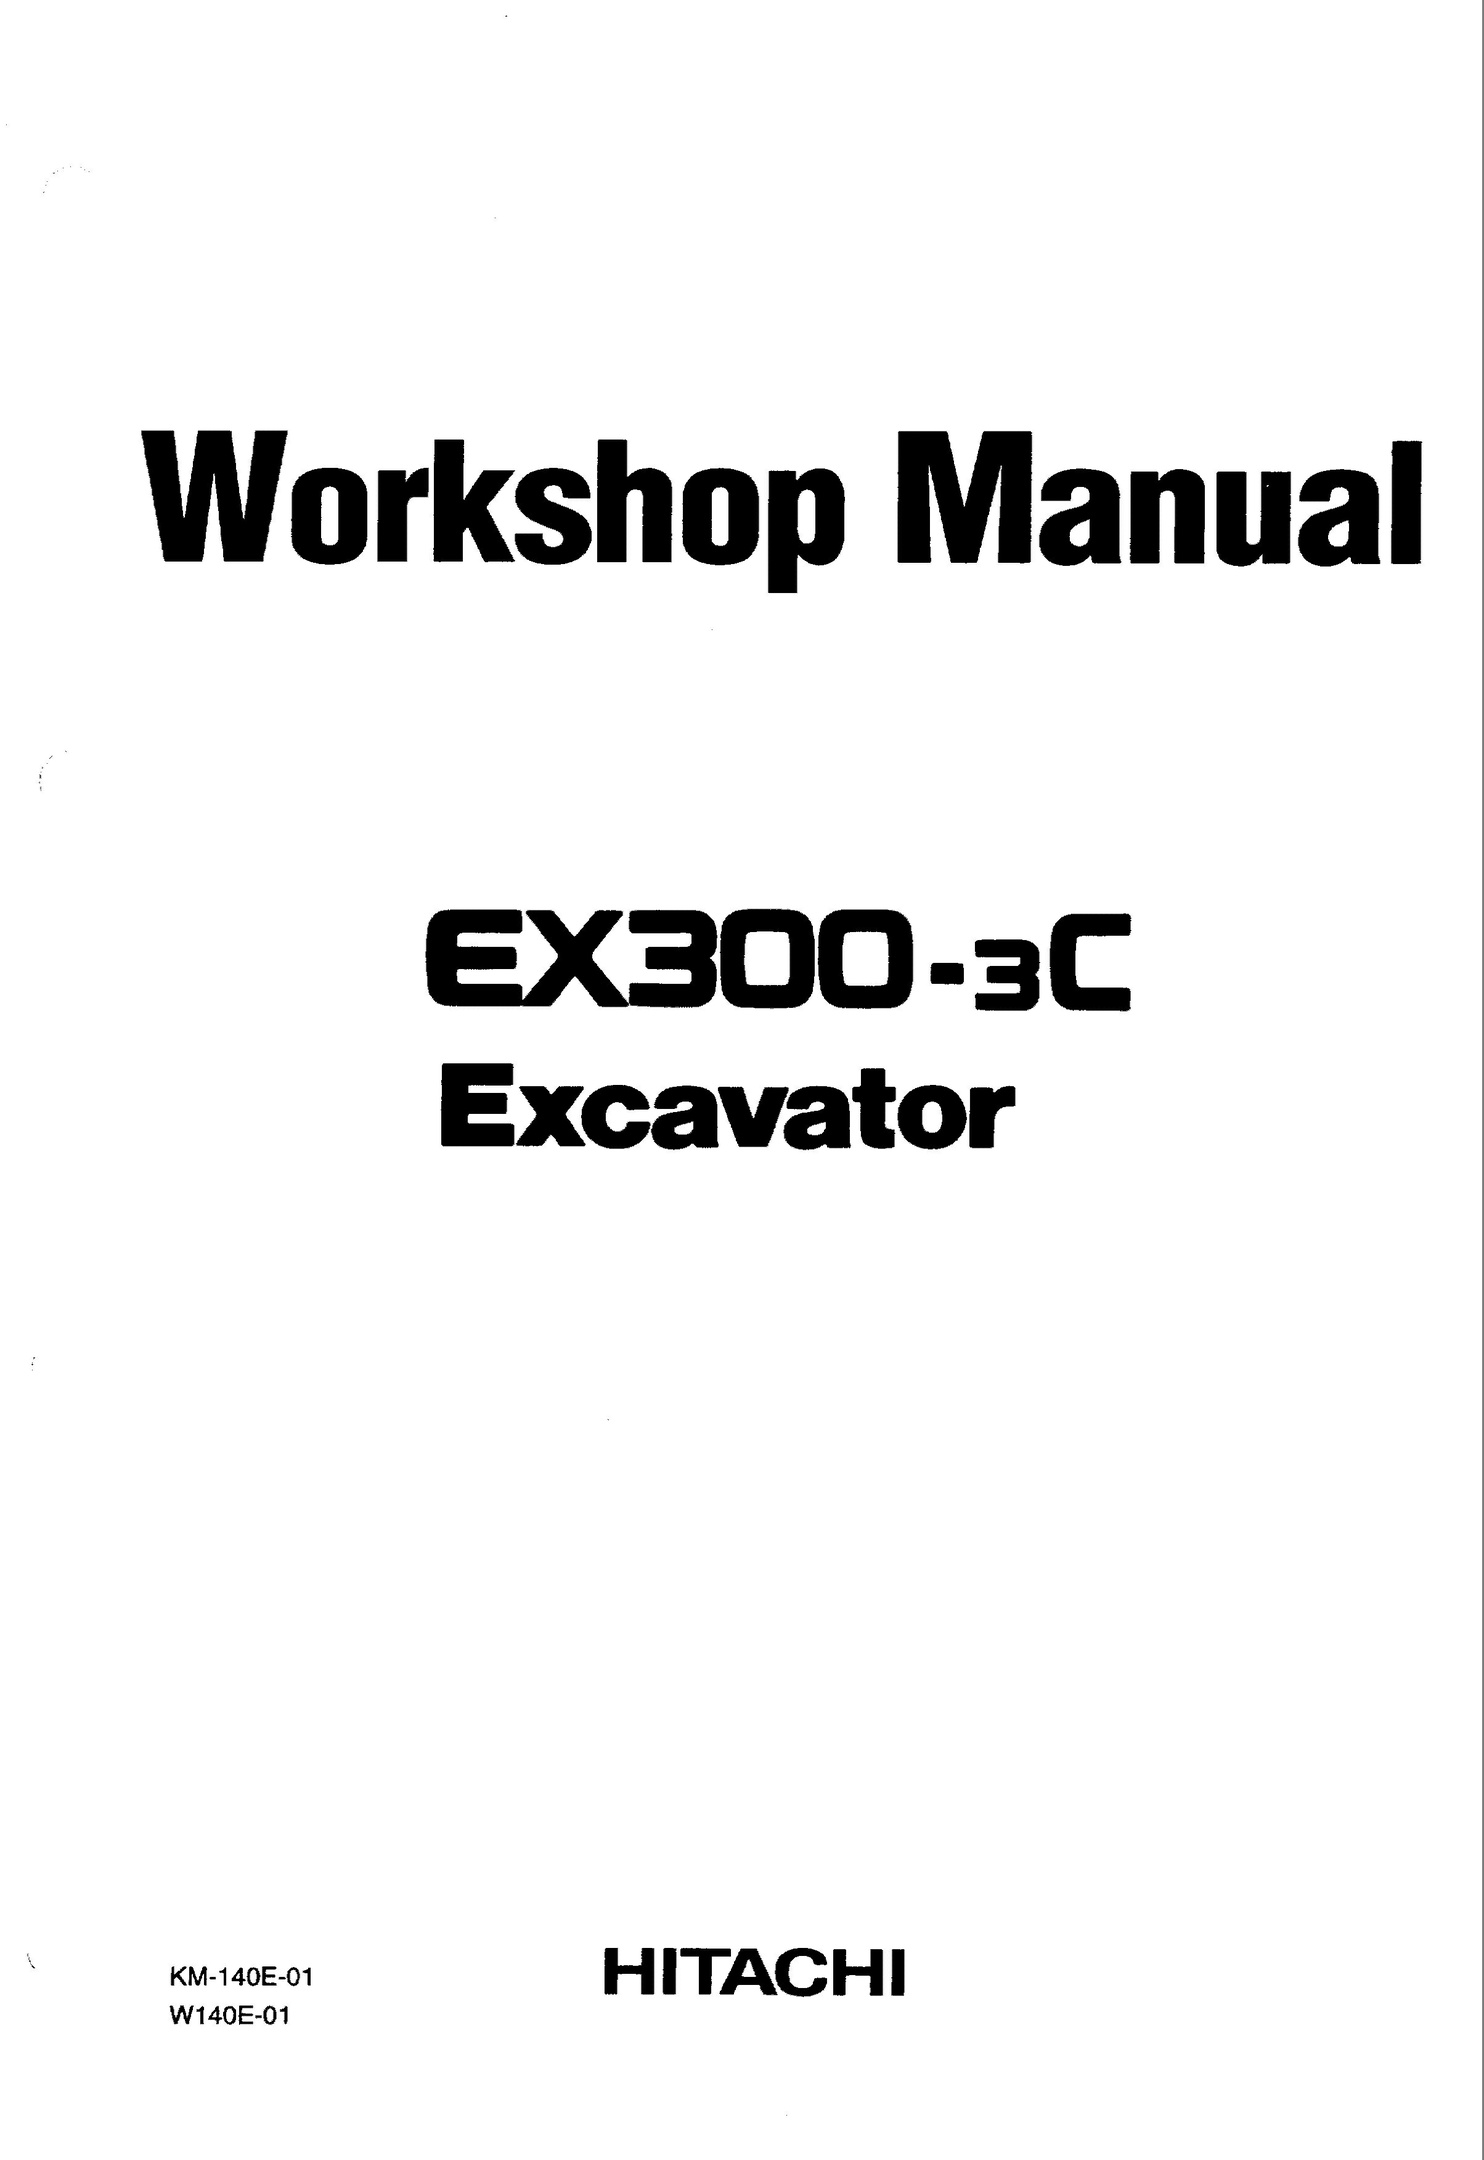 Hitachi Manual Pdf 700cc And Roadster Grundig Stereo Wiring Ras 25fh6 Service Array Ex300 3c Ex300lc Ex310h Ex310lch Repa Rh Sellfy Com